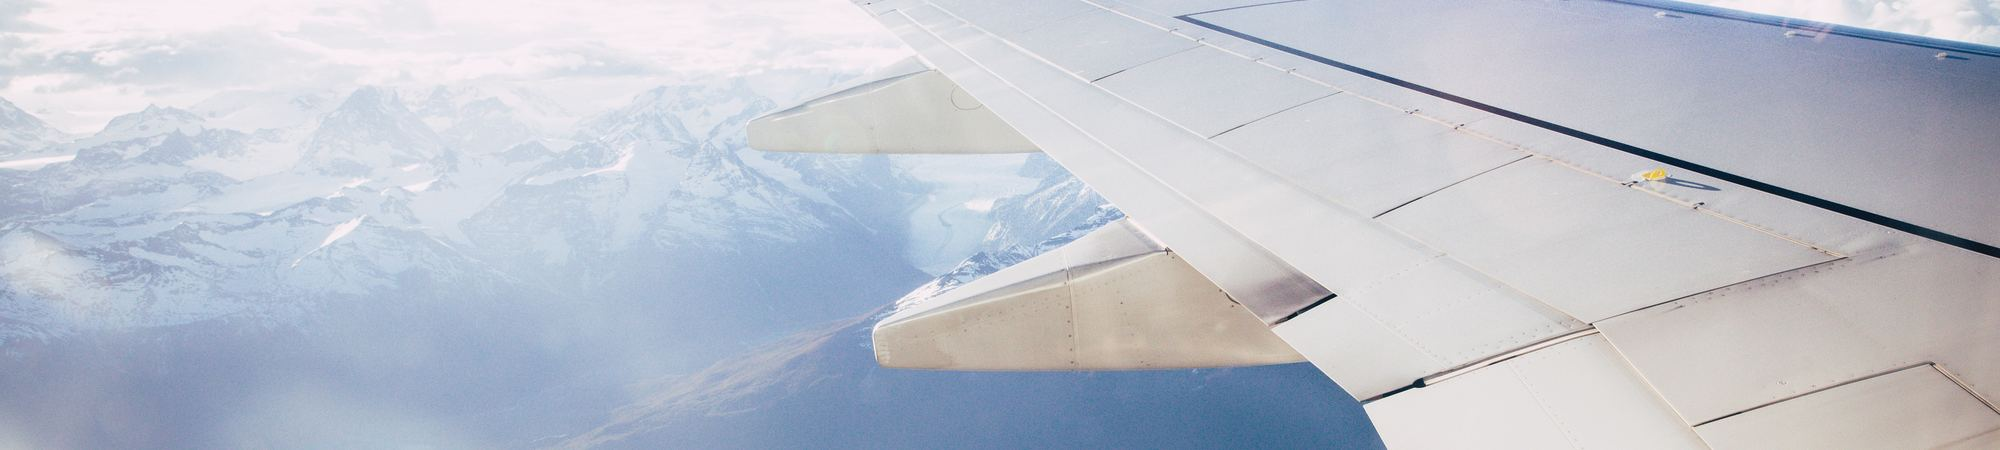 plane wing in sky over snowy mountains and lake